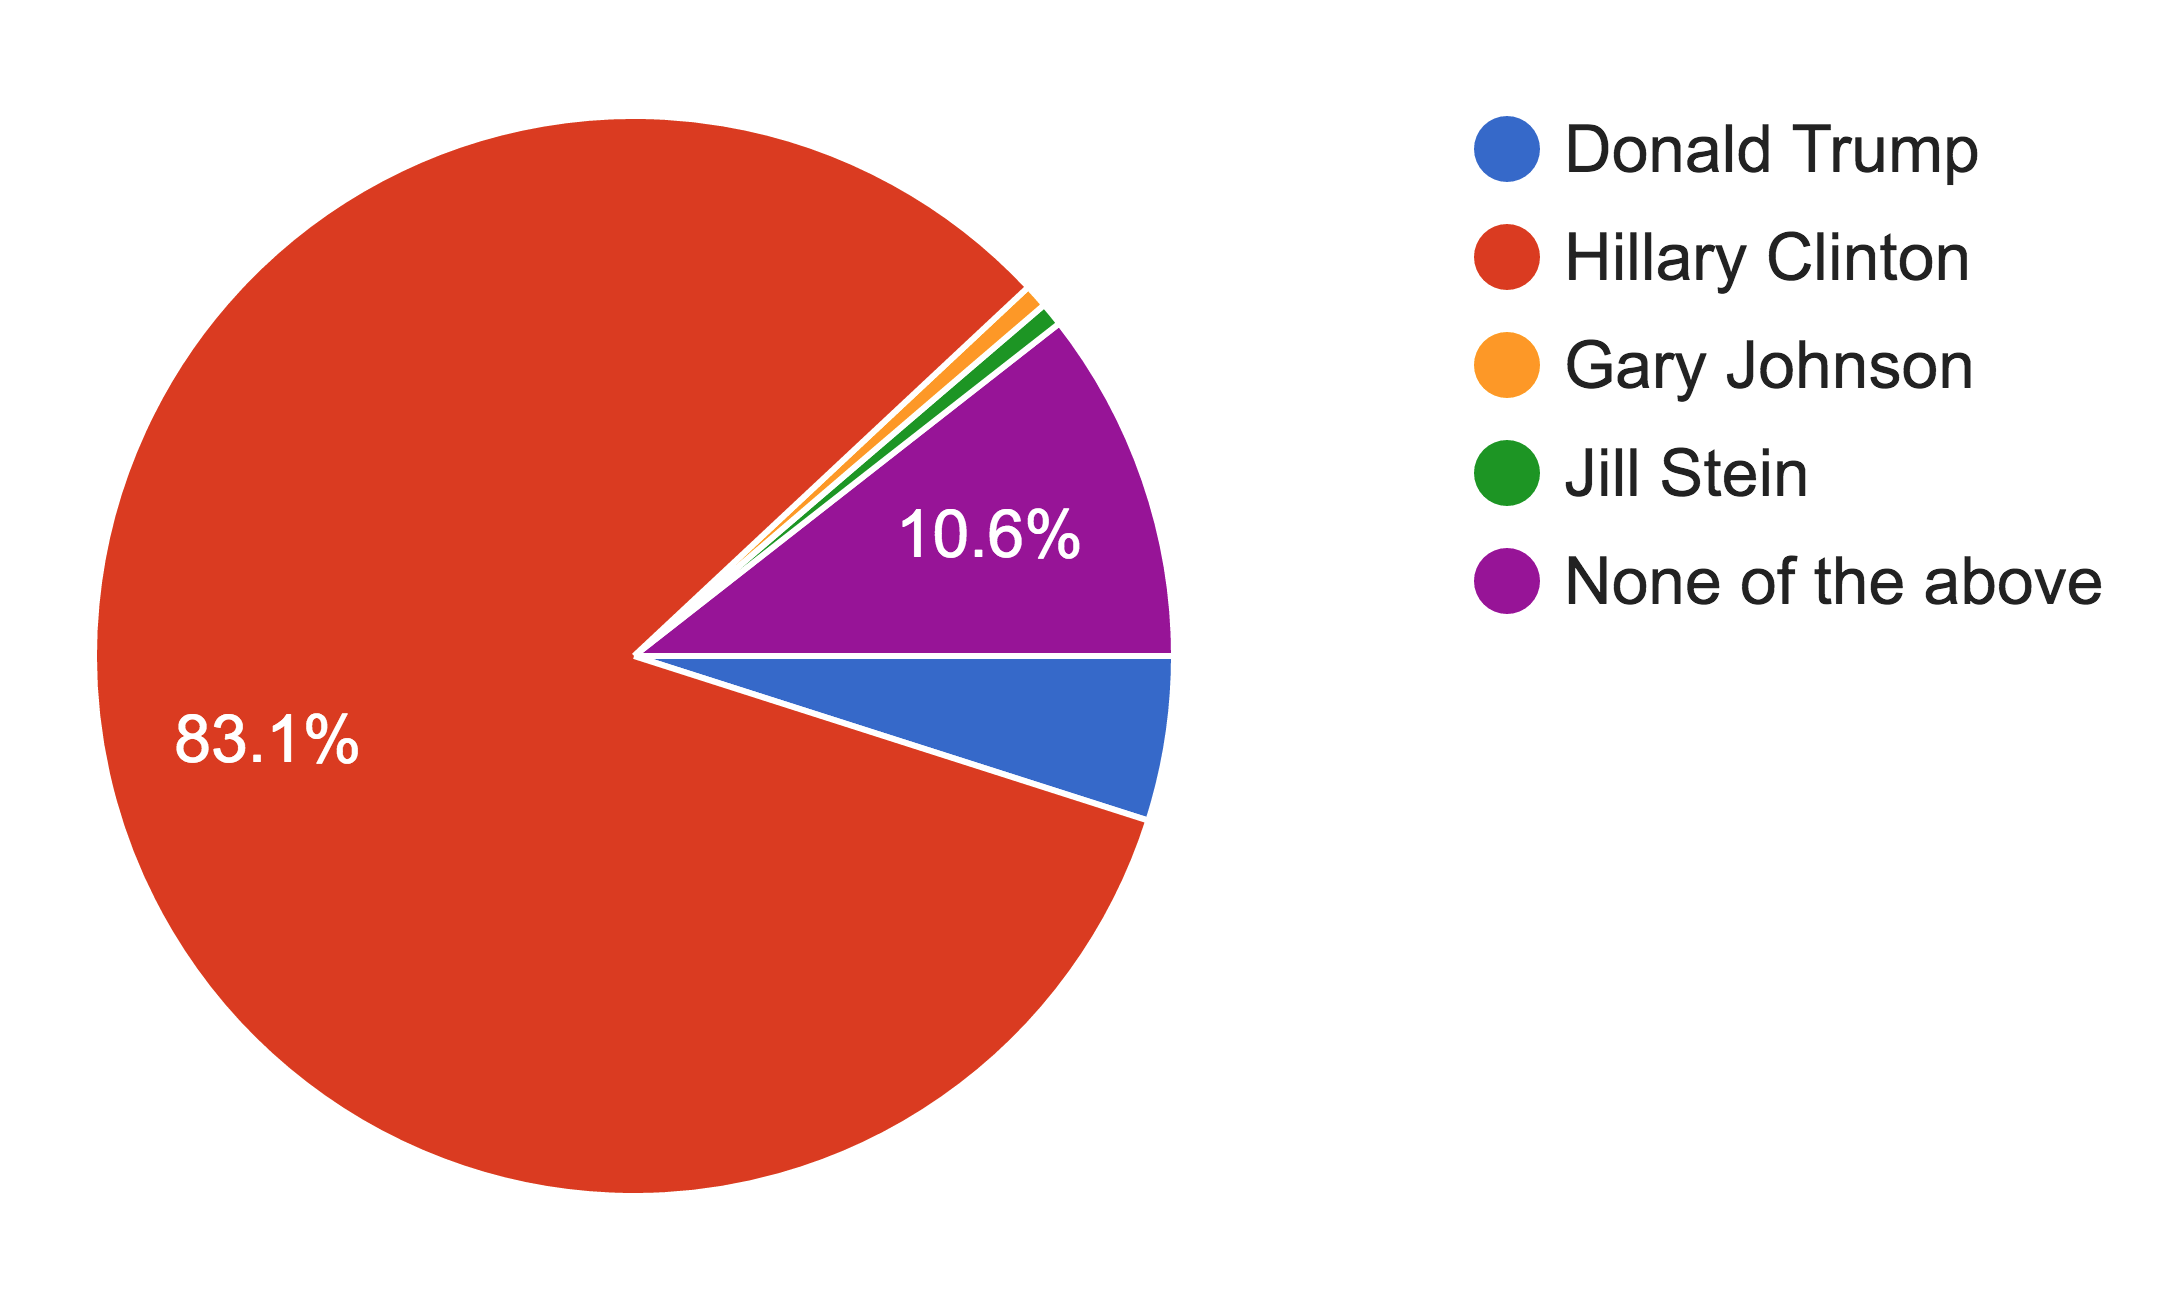 Poll Taken at Riverdale on November 9.  Data Showing the riverdale Community's Presidential support in the election.